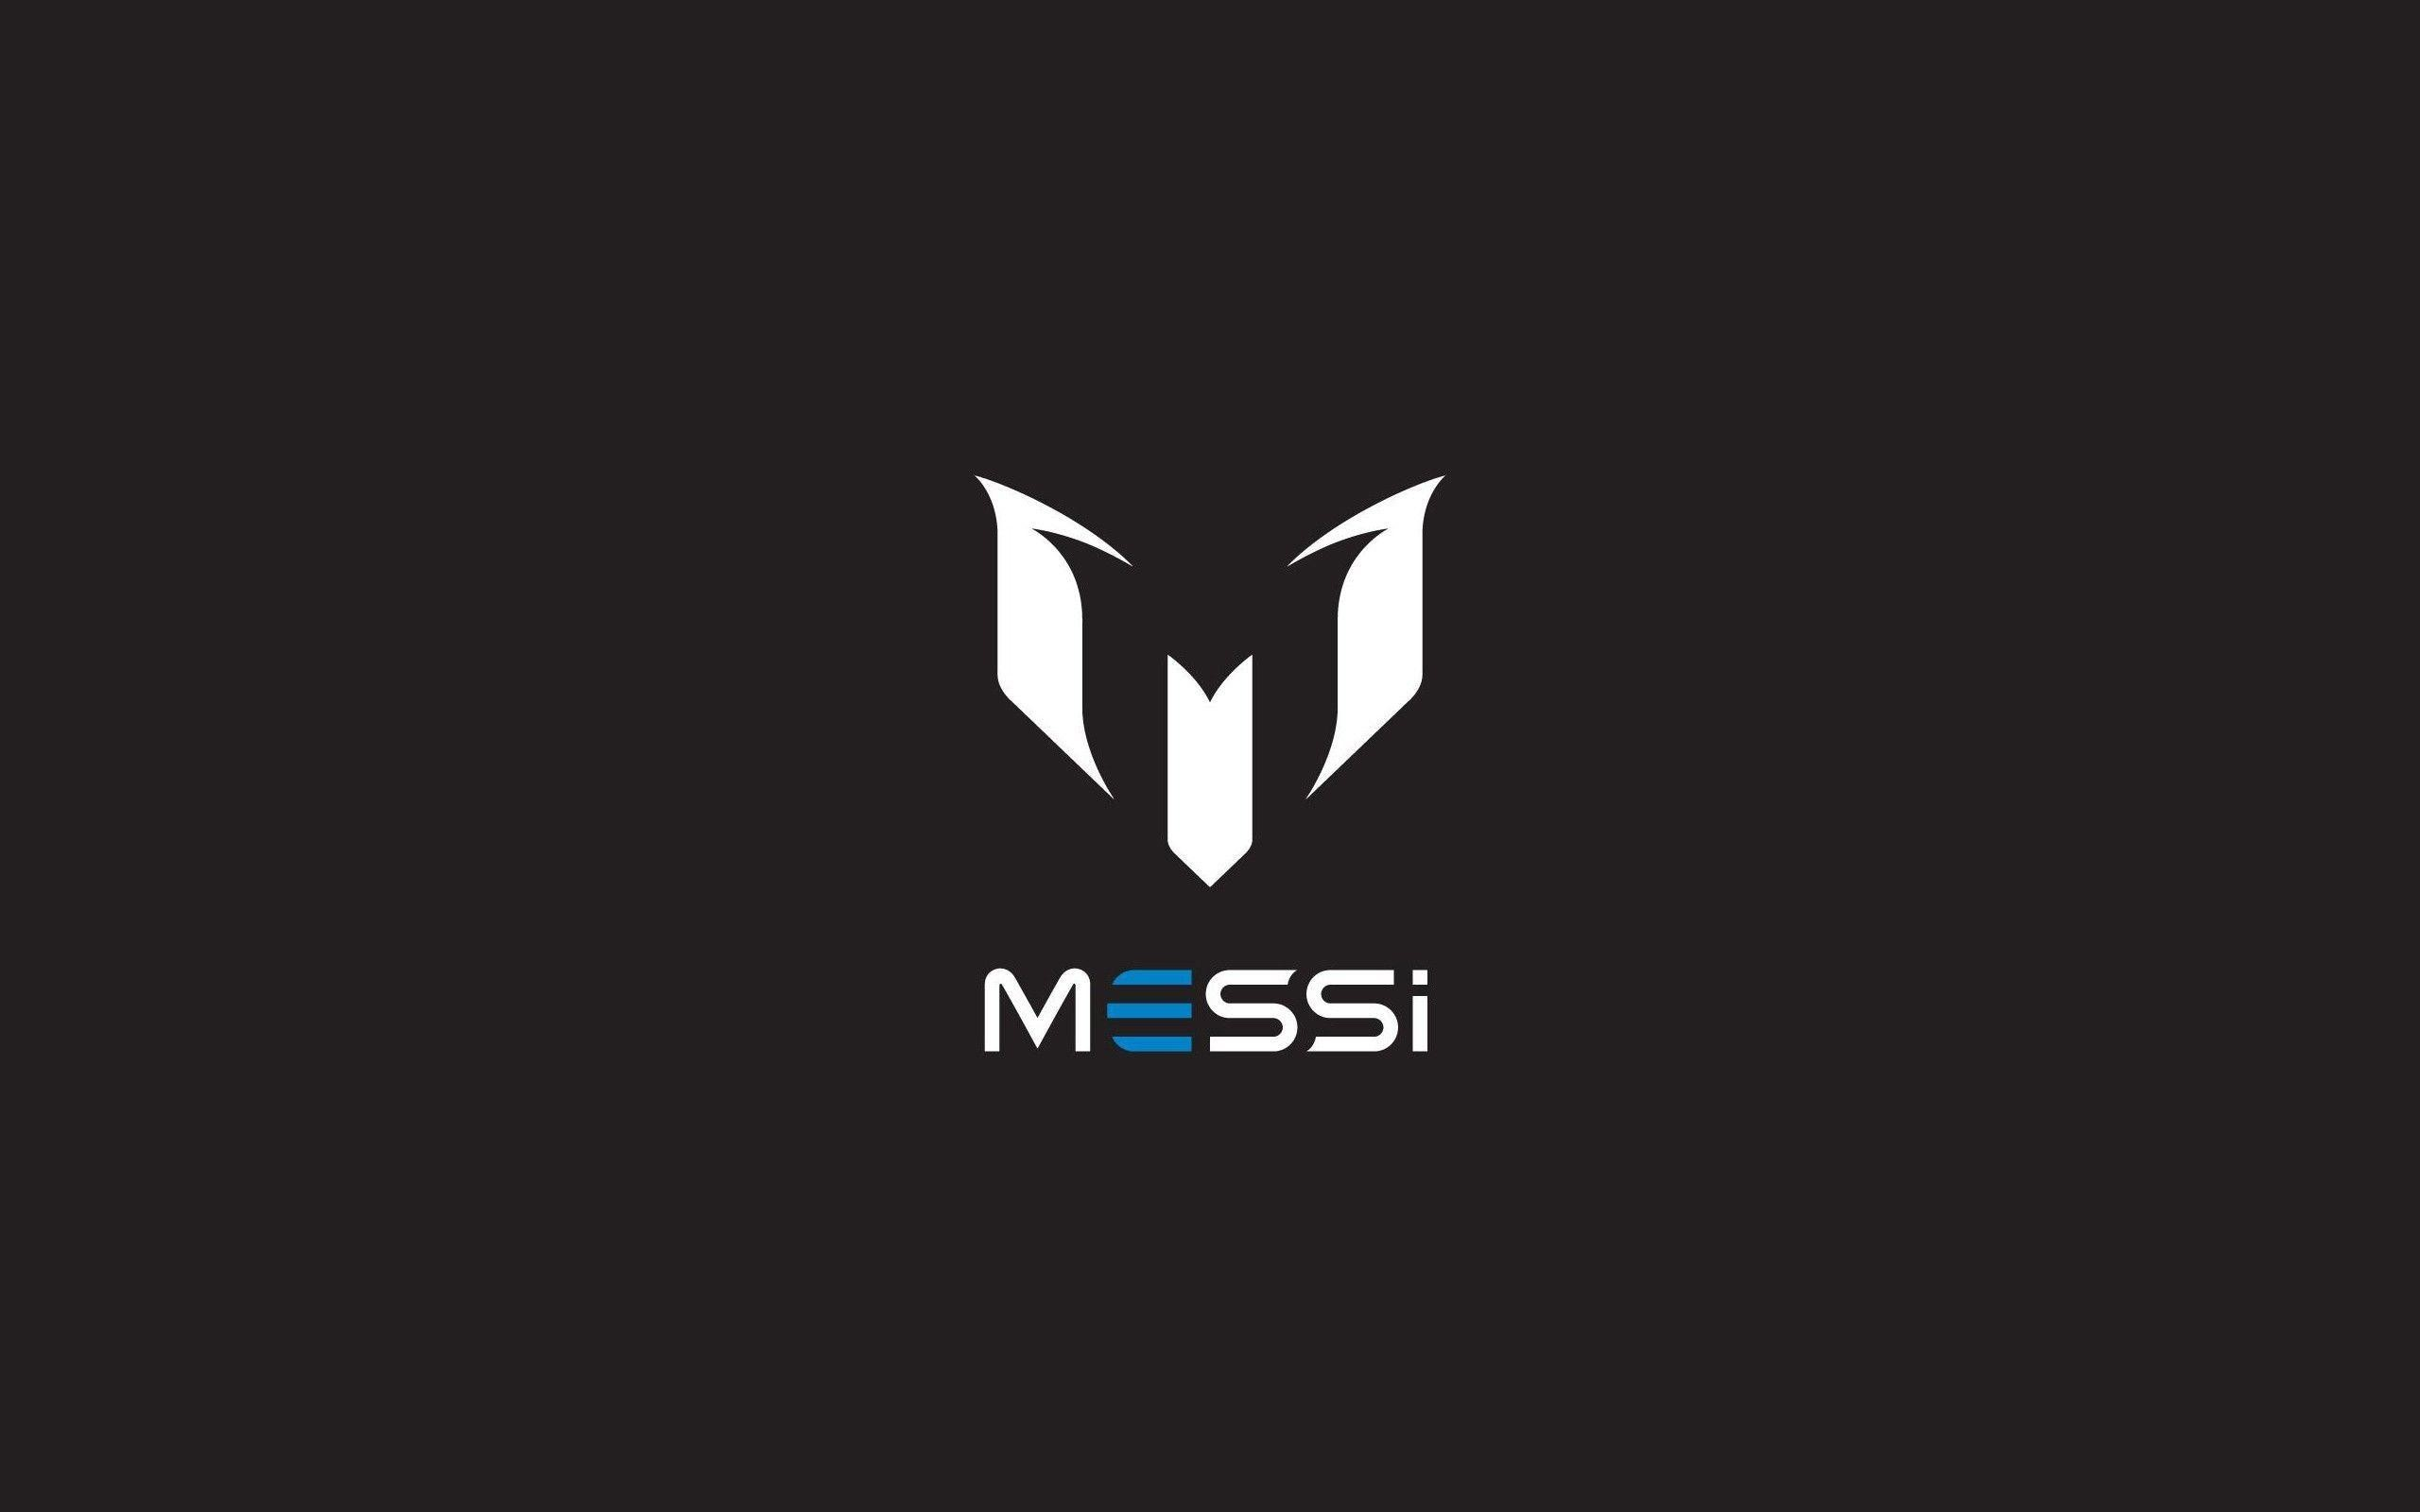 2560x1600 Messi logo Adidas wallpaper Wide or HD | Male Celebrities Wallpapers